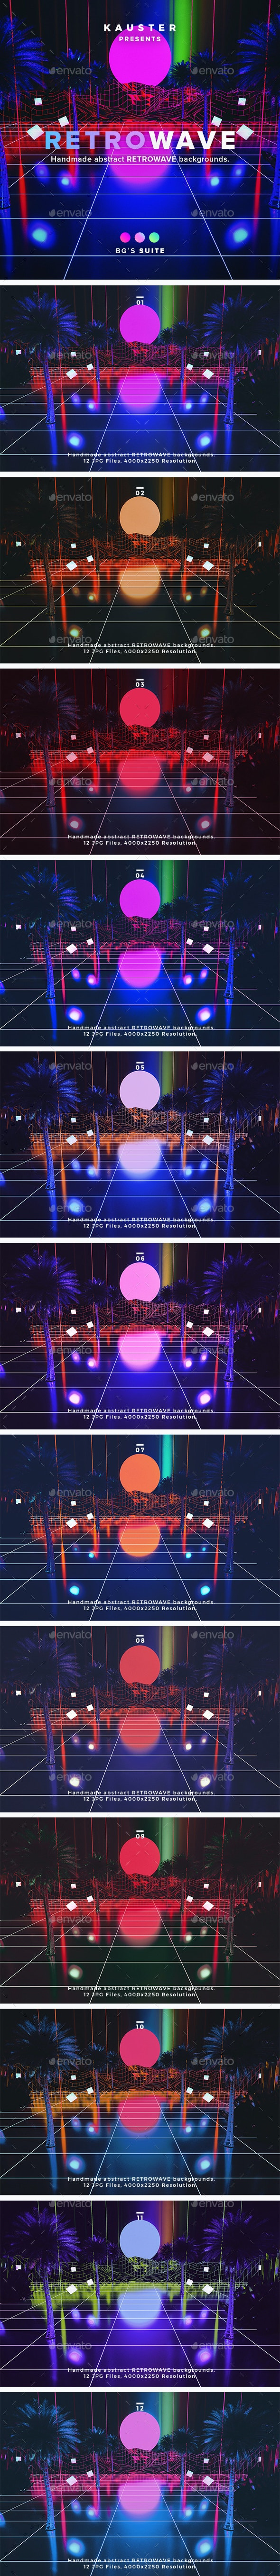 Retrowave Backgrounds - Abstract Backgrounds